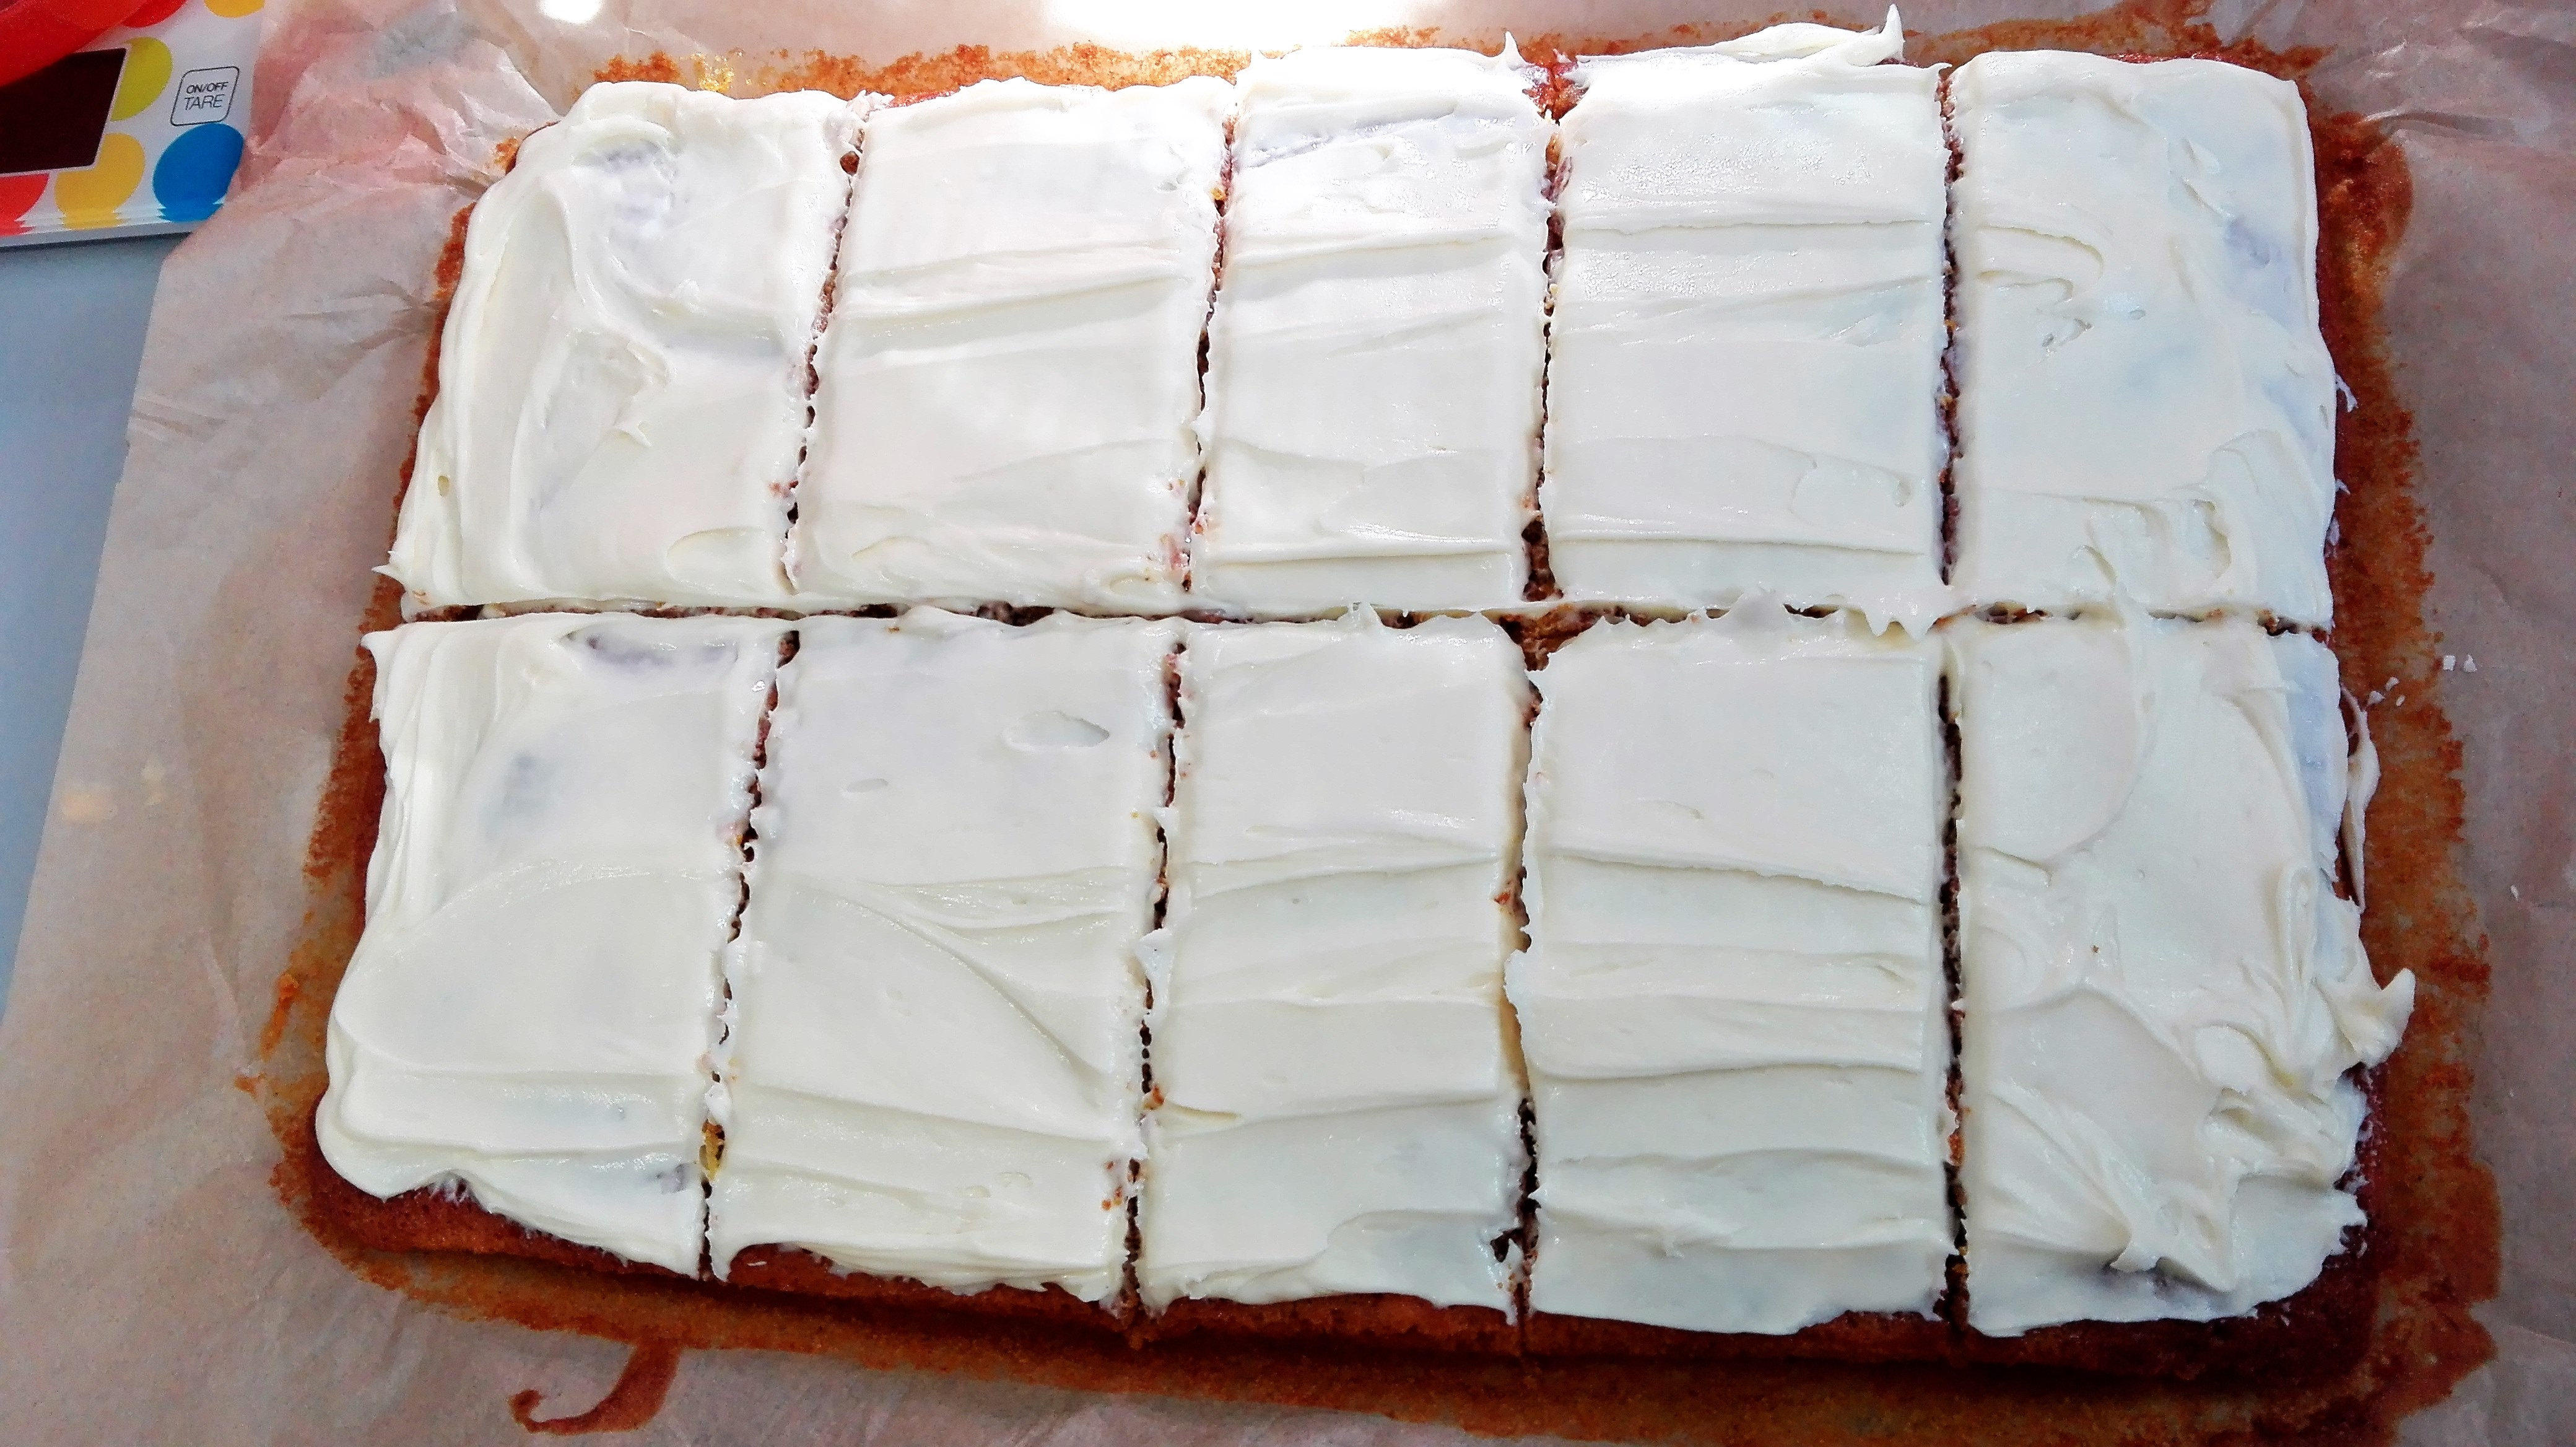 gluten free carrot cake traybake all iced and sliced up